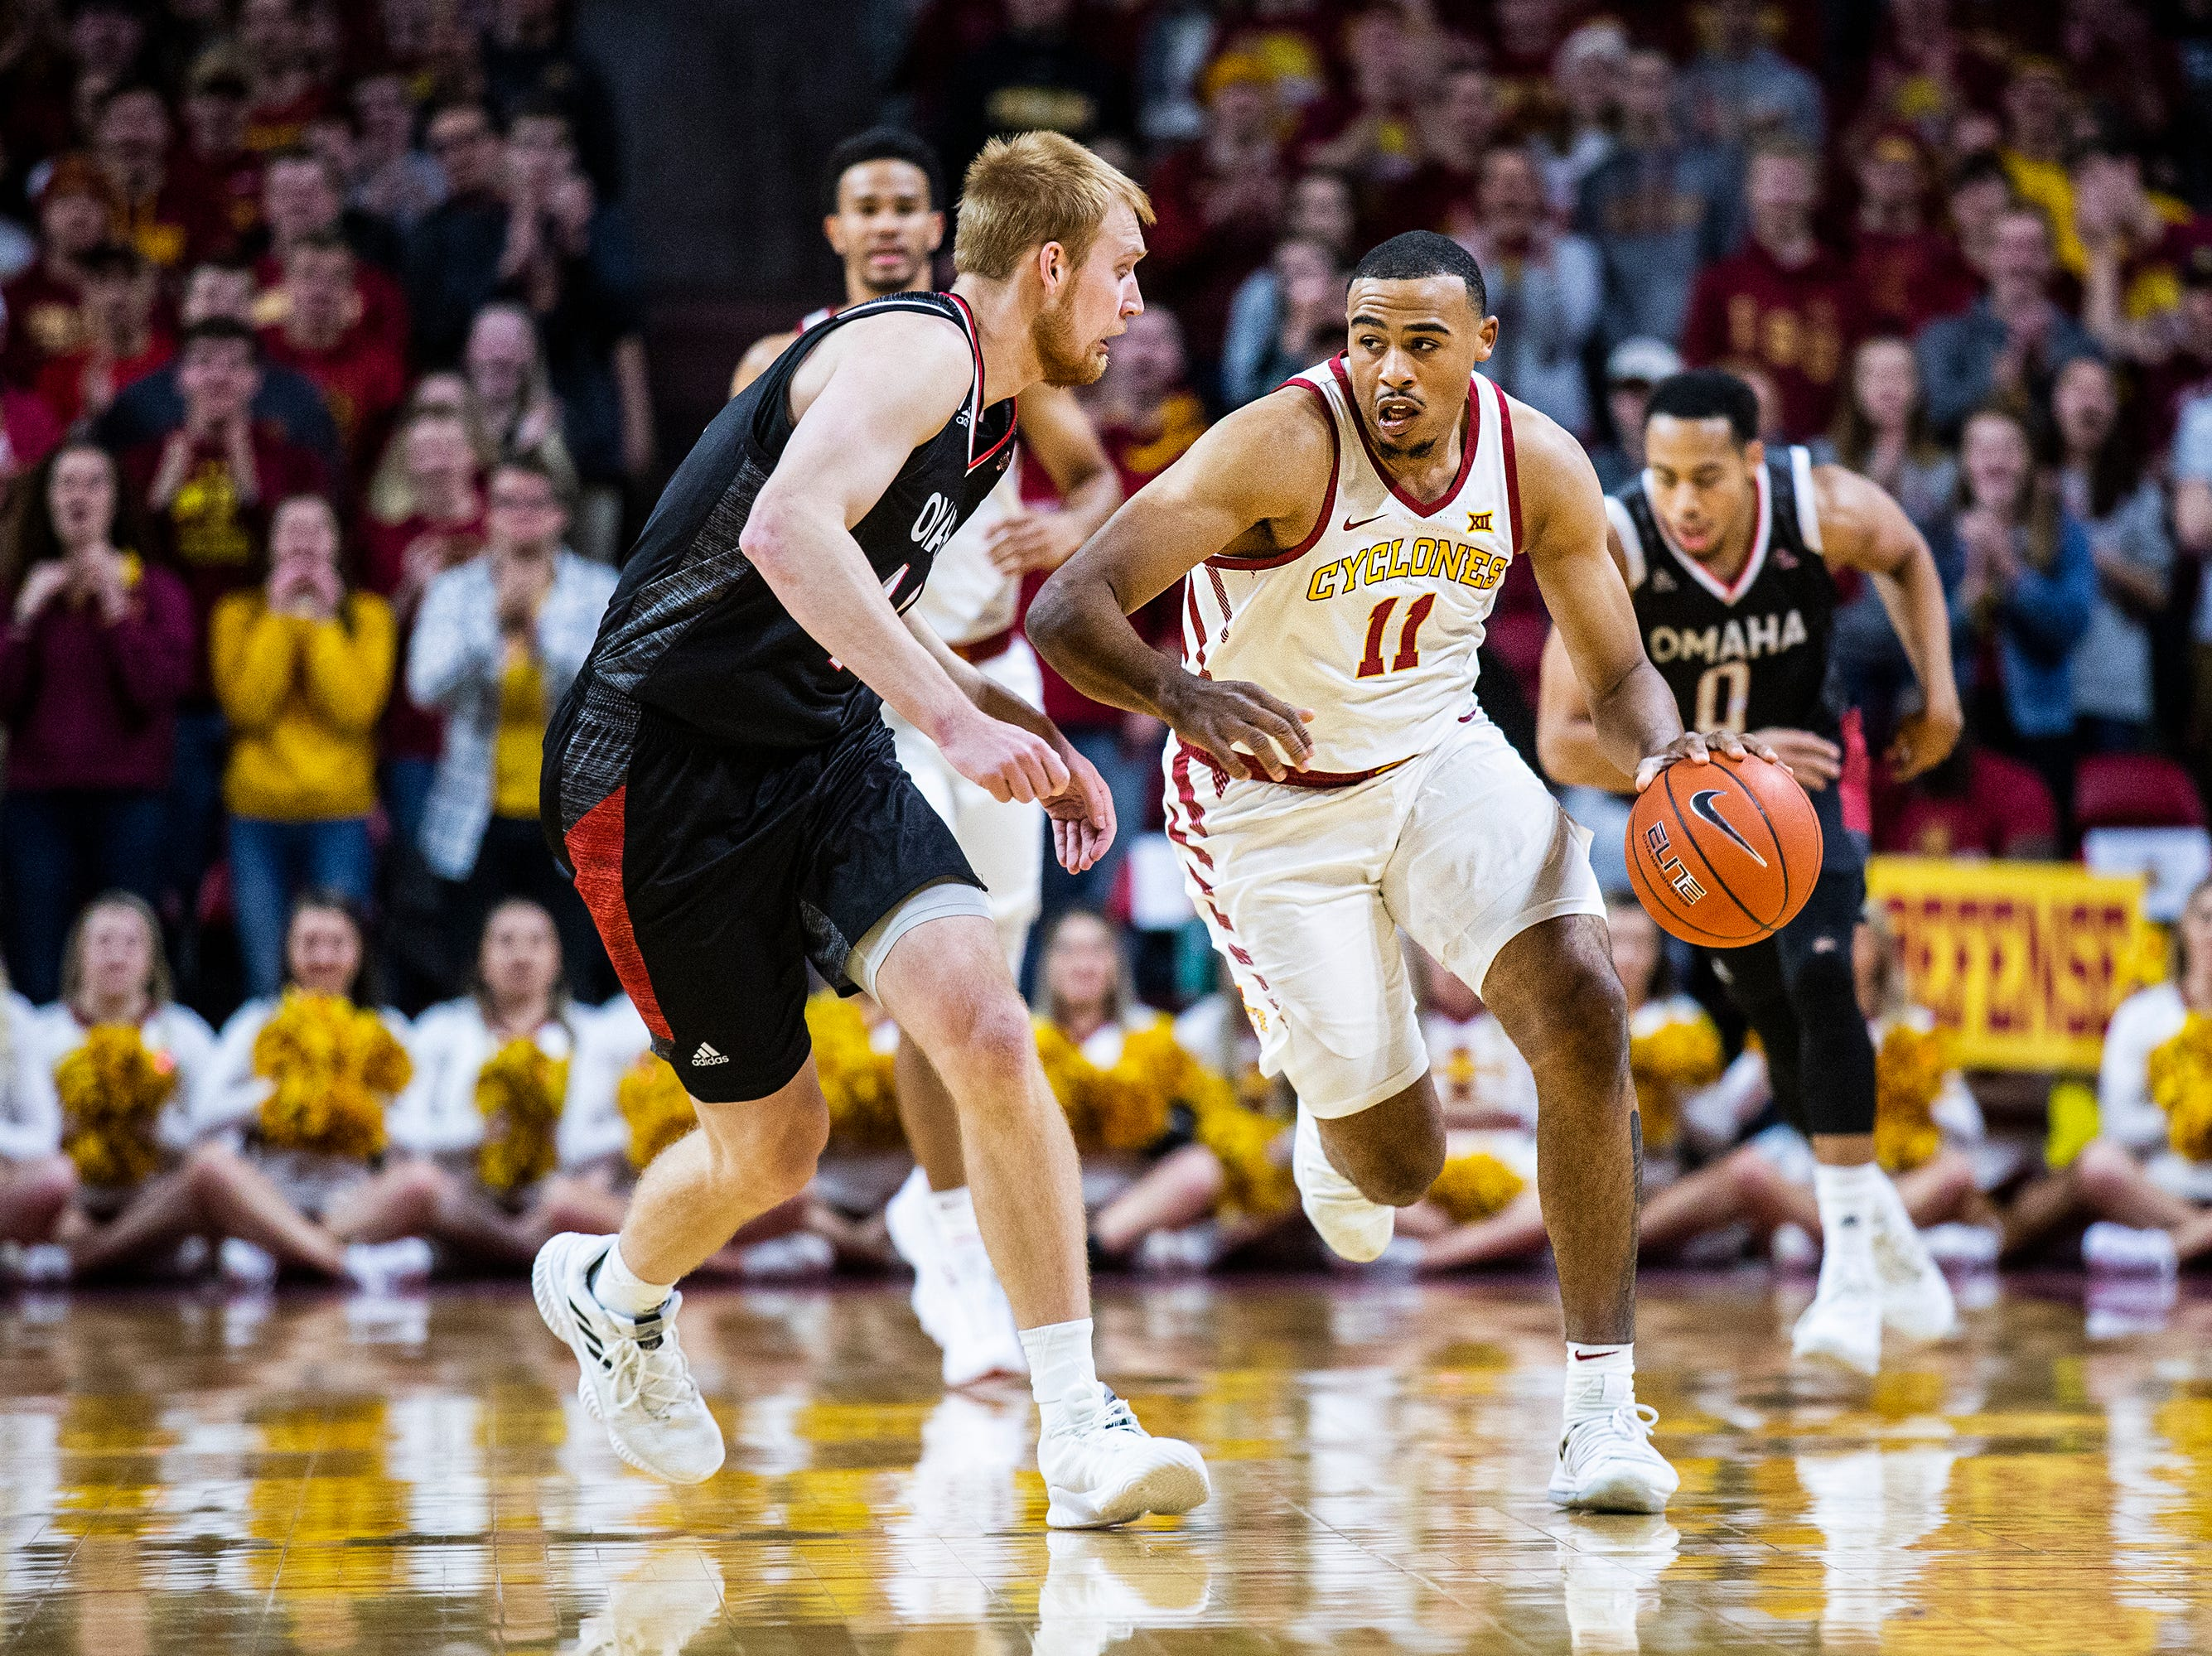 Iowa State's Talen Horton-Tucker brings the ball down the court during the Iowa State men's basketball game against Omaha on Monday, Nov. 26, 2018, at Hilton Coliseum, in Ames.